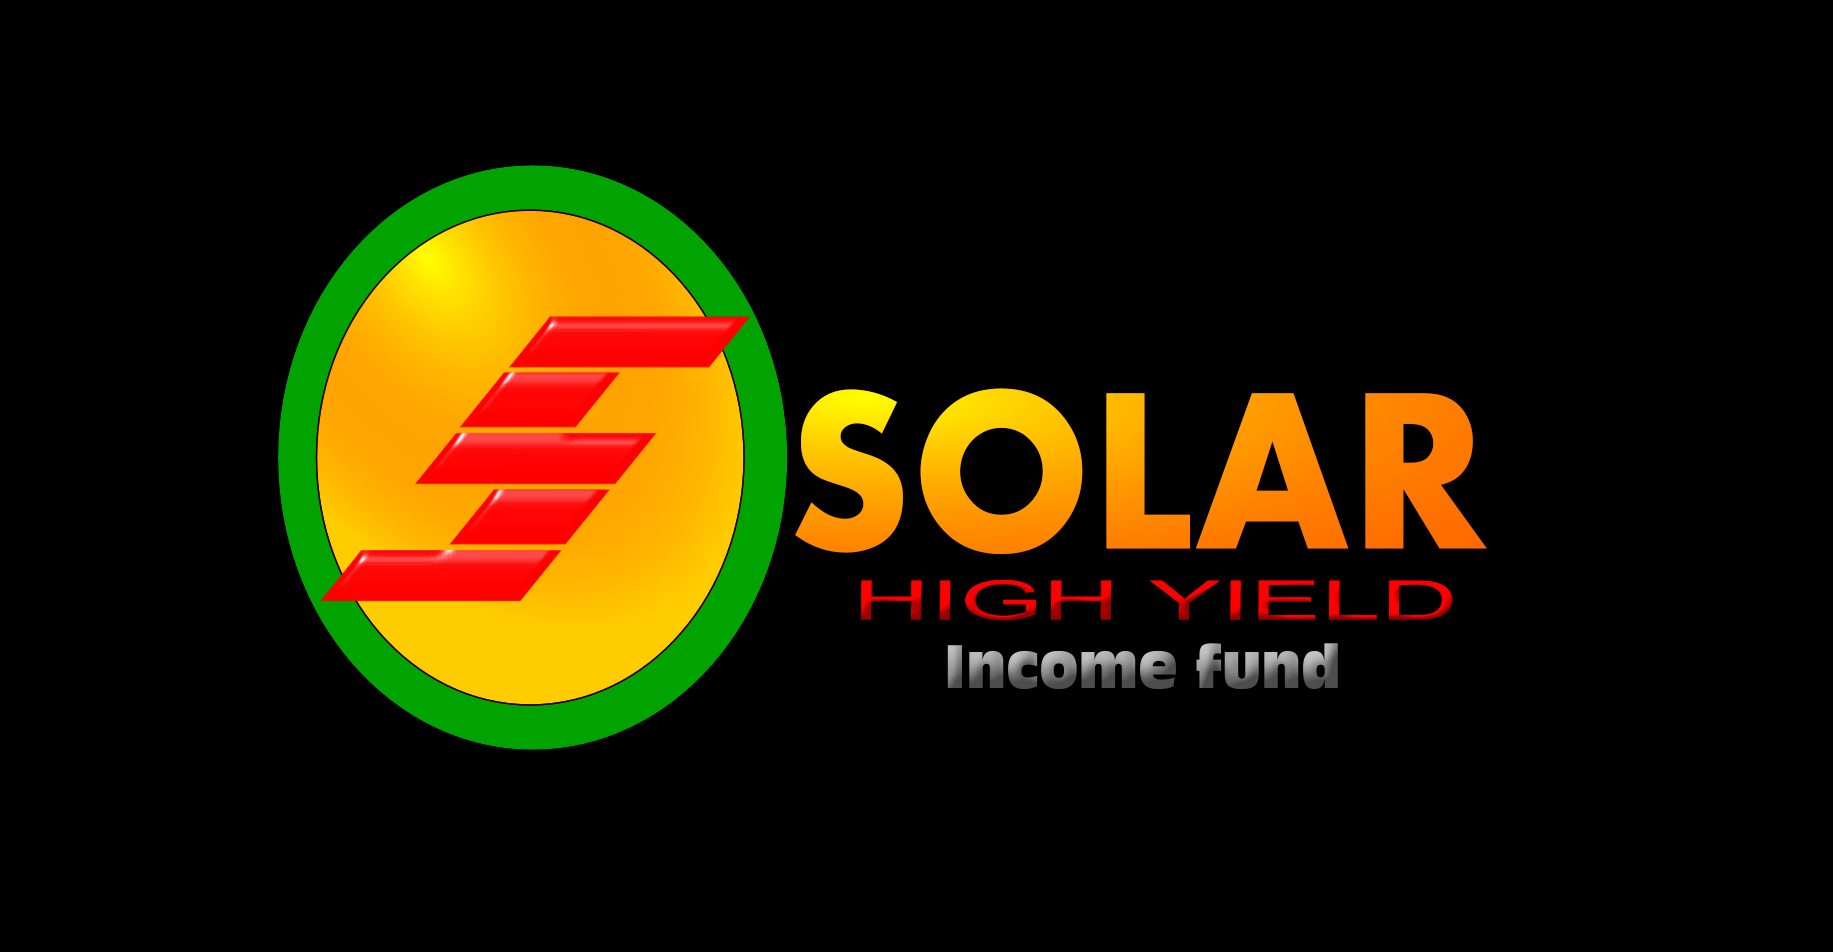 Logo Design by Joseph calunsag Cagaanan - Entry No. 109 in the Logo Design Contest Logo Design Needed for Exciting New Company Solar High Yield Income Fund.